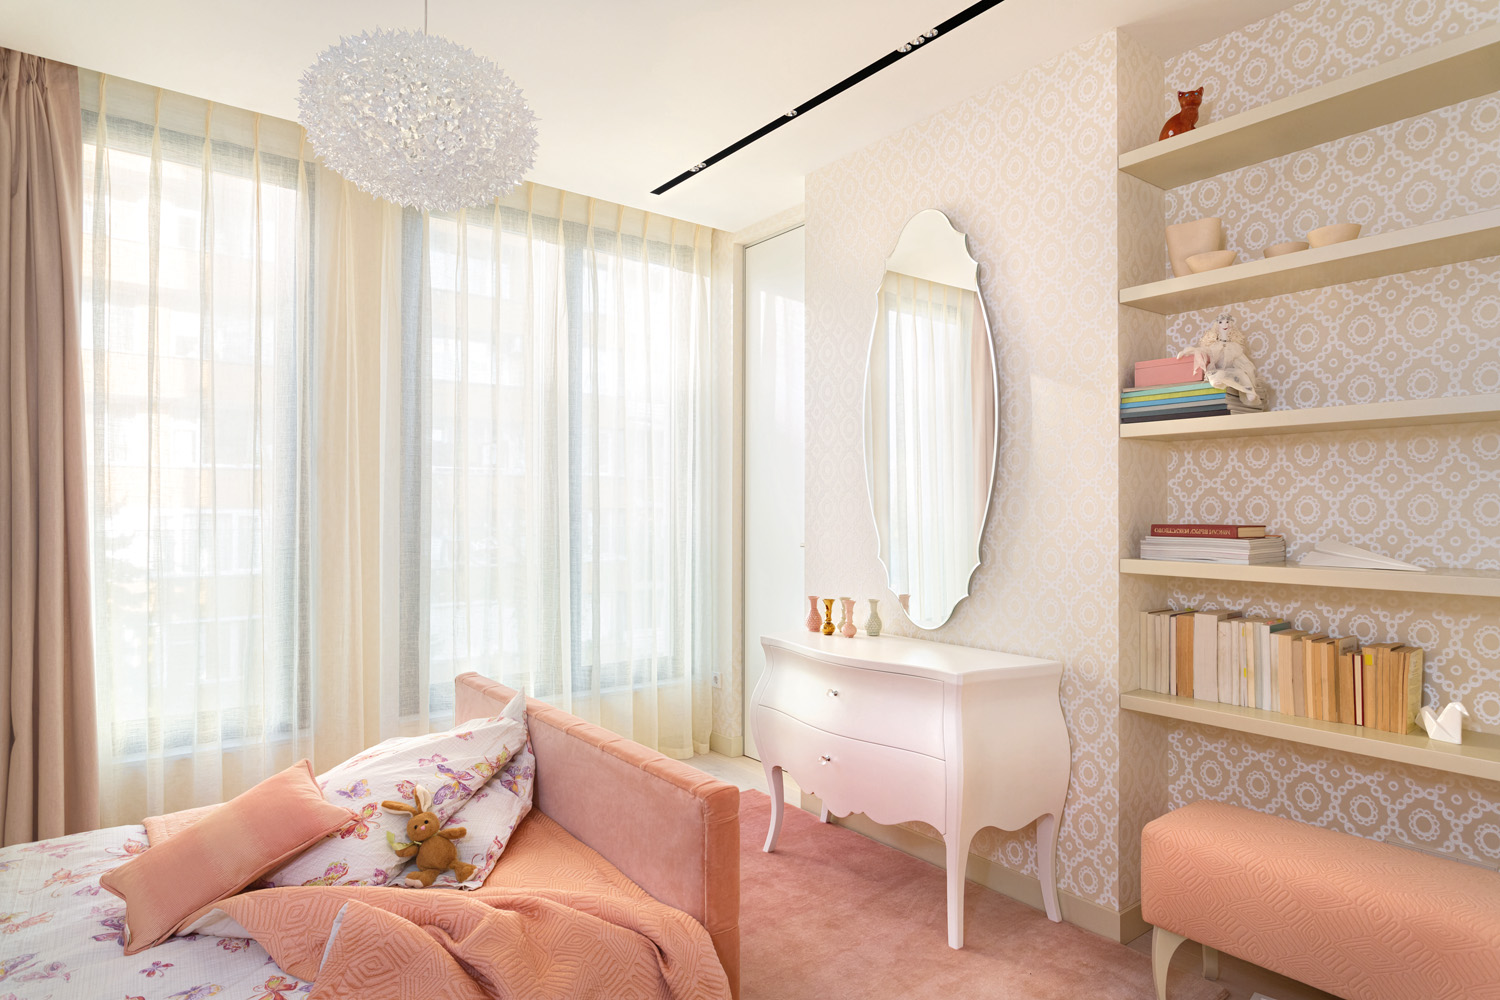 A feminine room is created using soft pinks and patterned wallpaper